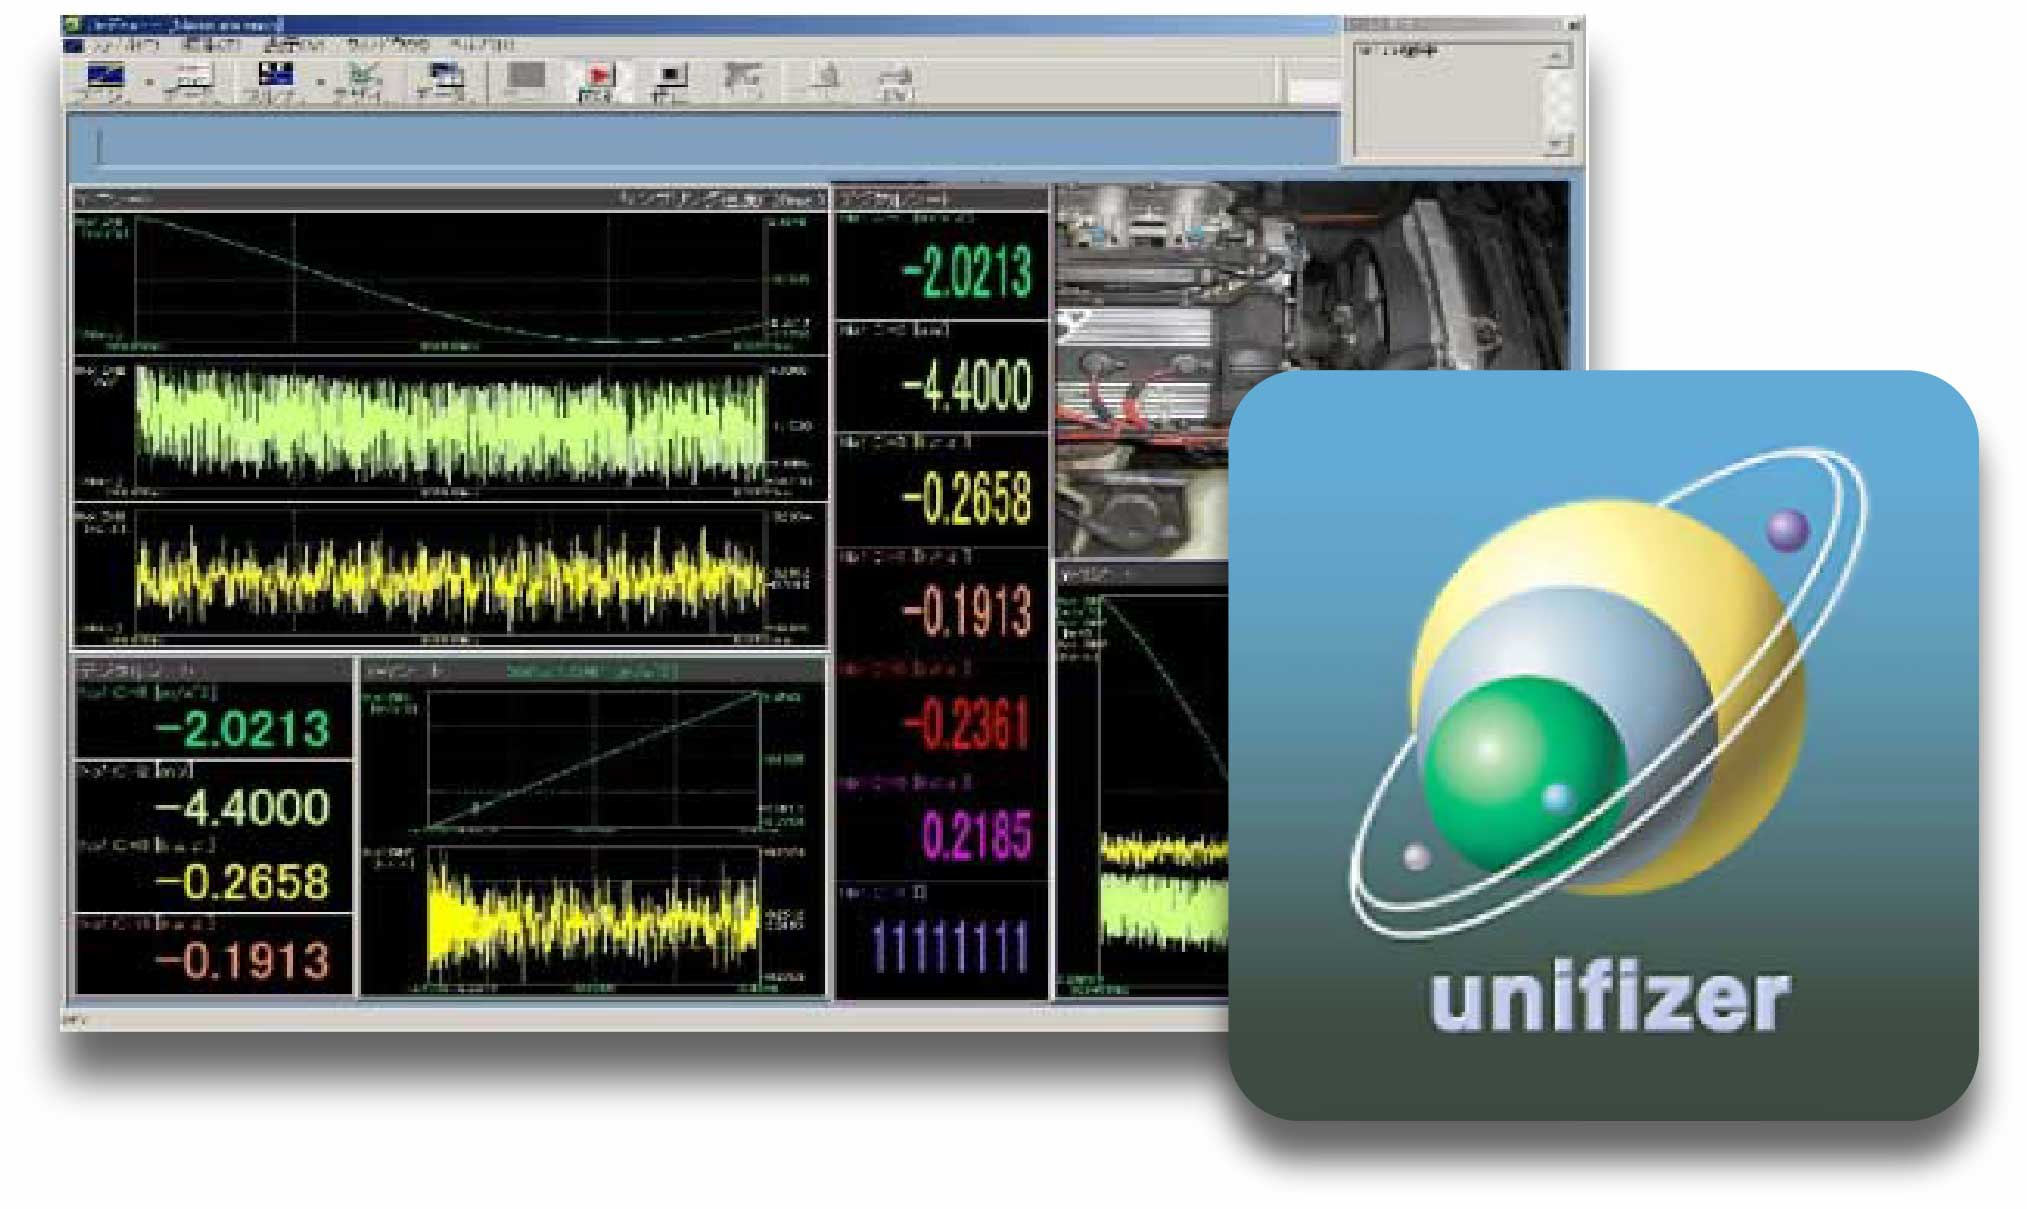 Unifizer NS3000 Platform Software for RA